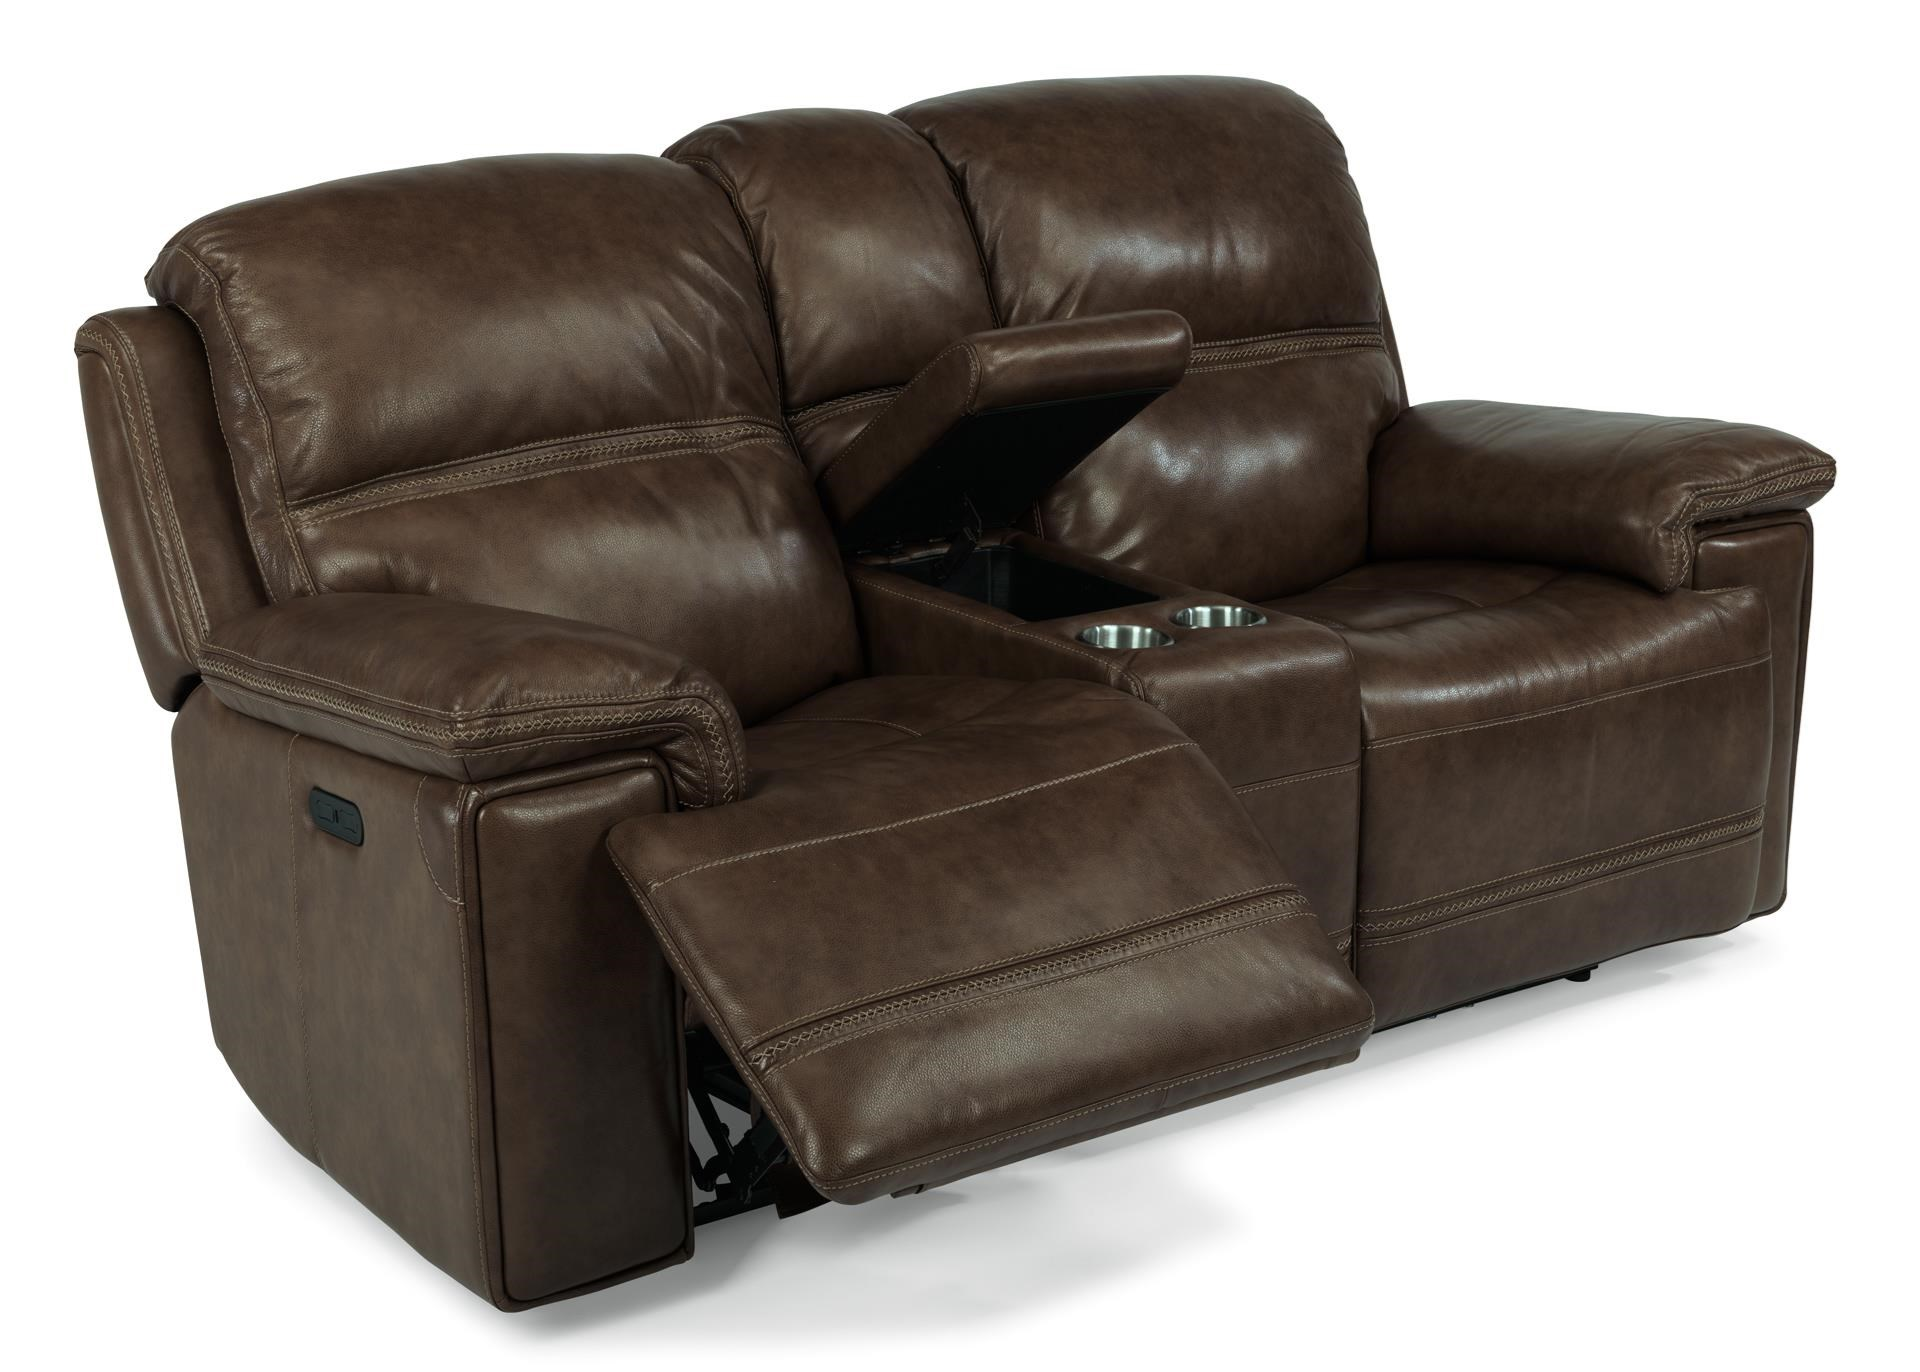 Flexsteel Latitudes-Fenwick Recliner Leather Power Console Loveseat w/ P - Item Number  sc 1 st  Great American Home Store & Flexsteel Latitudes-Fenwick Recliner Leather Power Console ... islam-shia.org